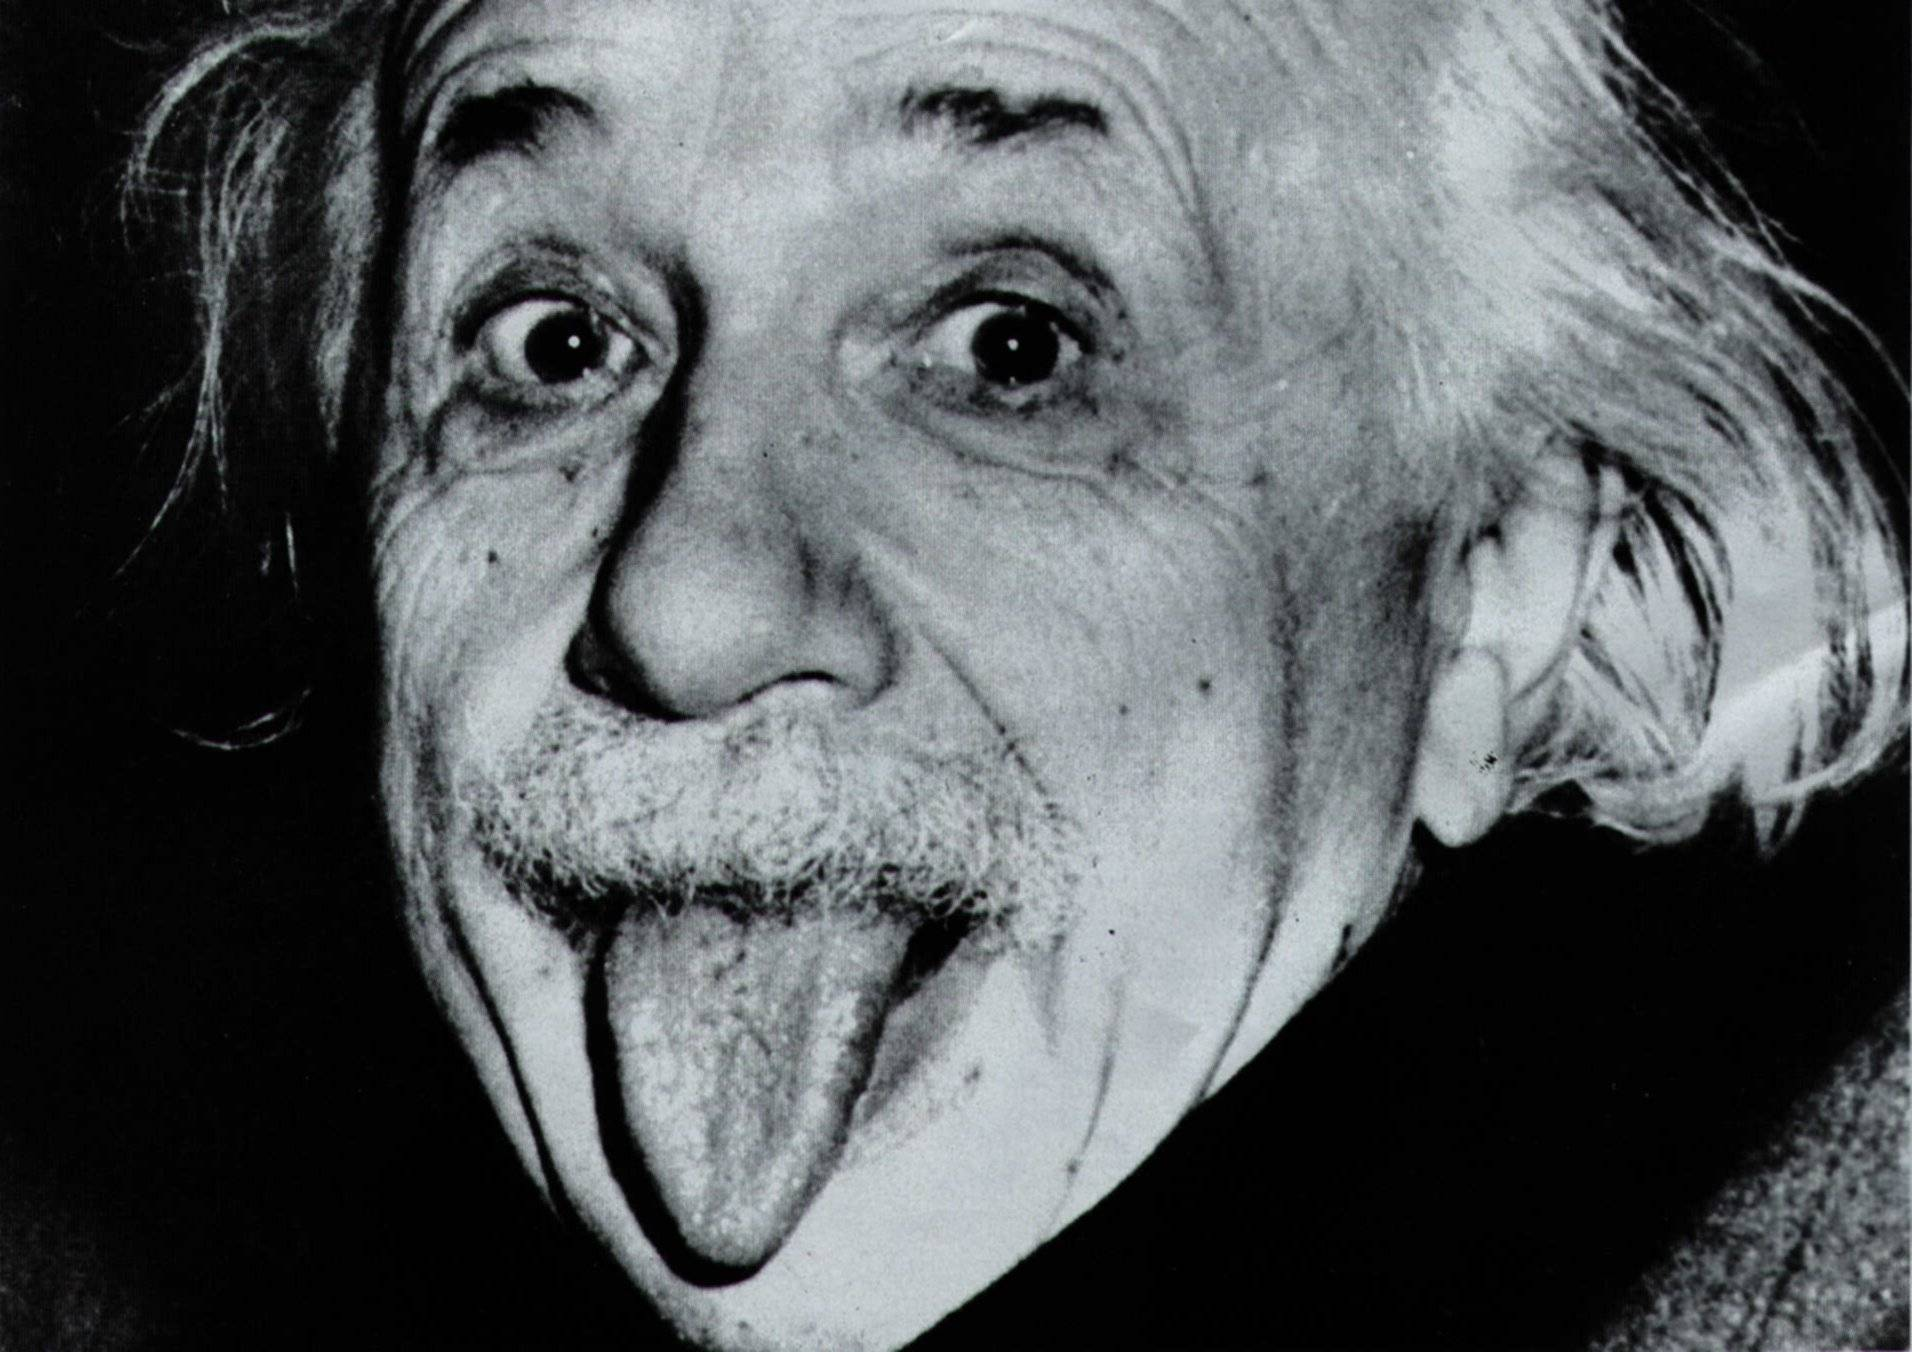 565dcdfe0e2163330400bf82albert-einstein-2071-hd-wallpapers.jpeg